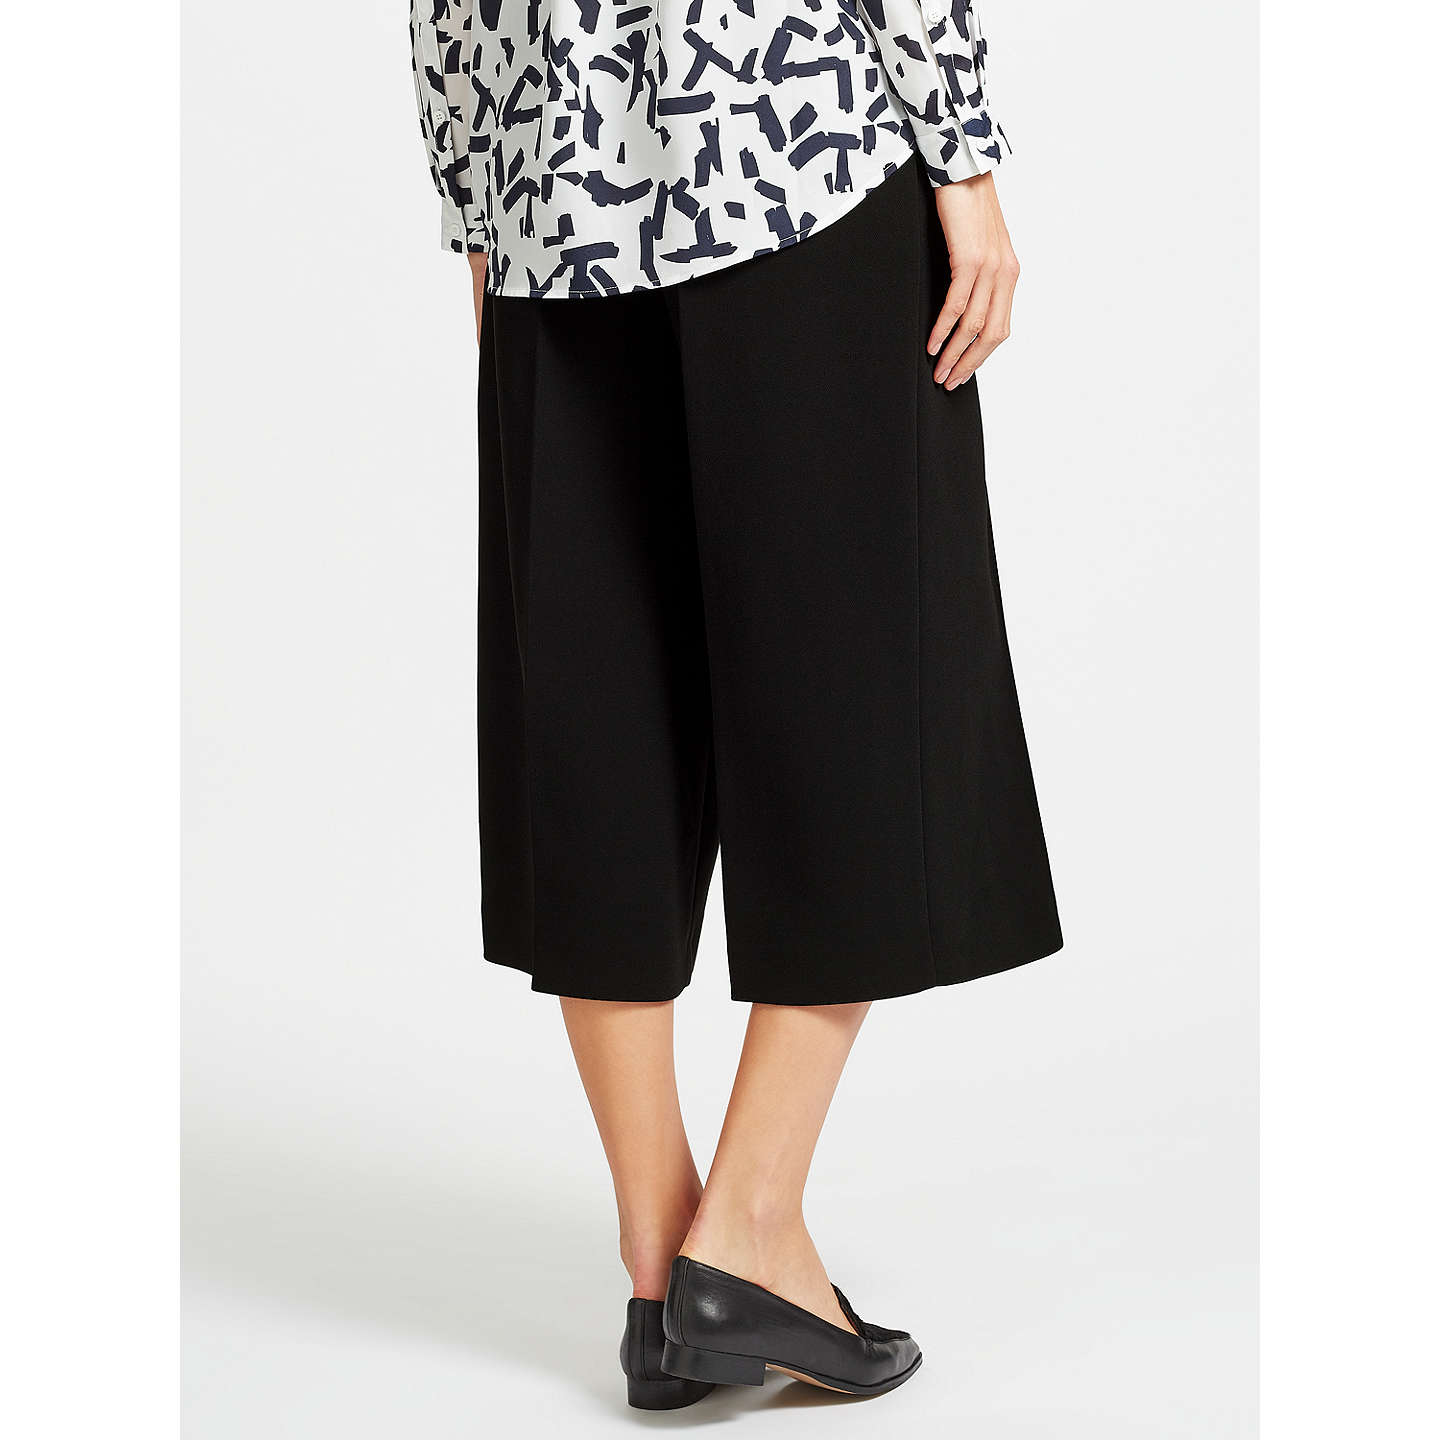 BuyKin by John Lewis Twill Wide Leg Cropped Trousers, Black, 8 Online at johnlewis.com